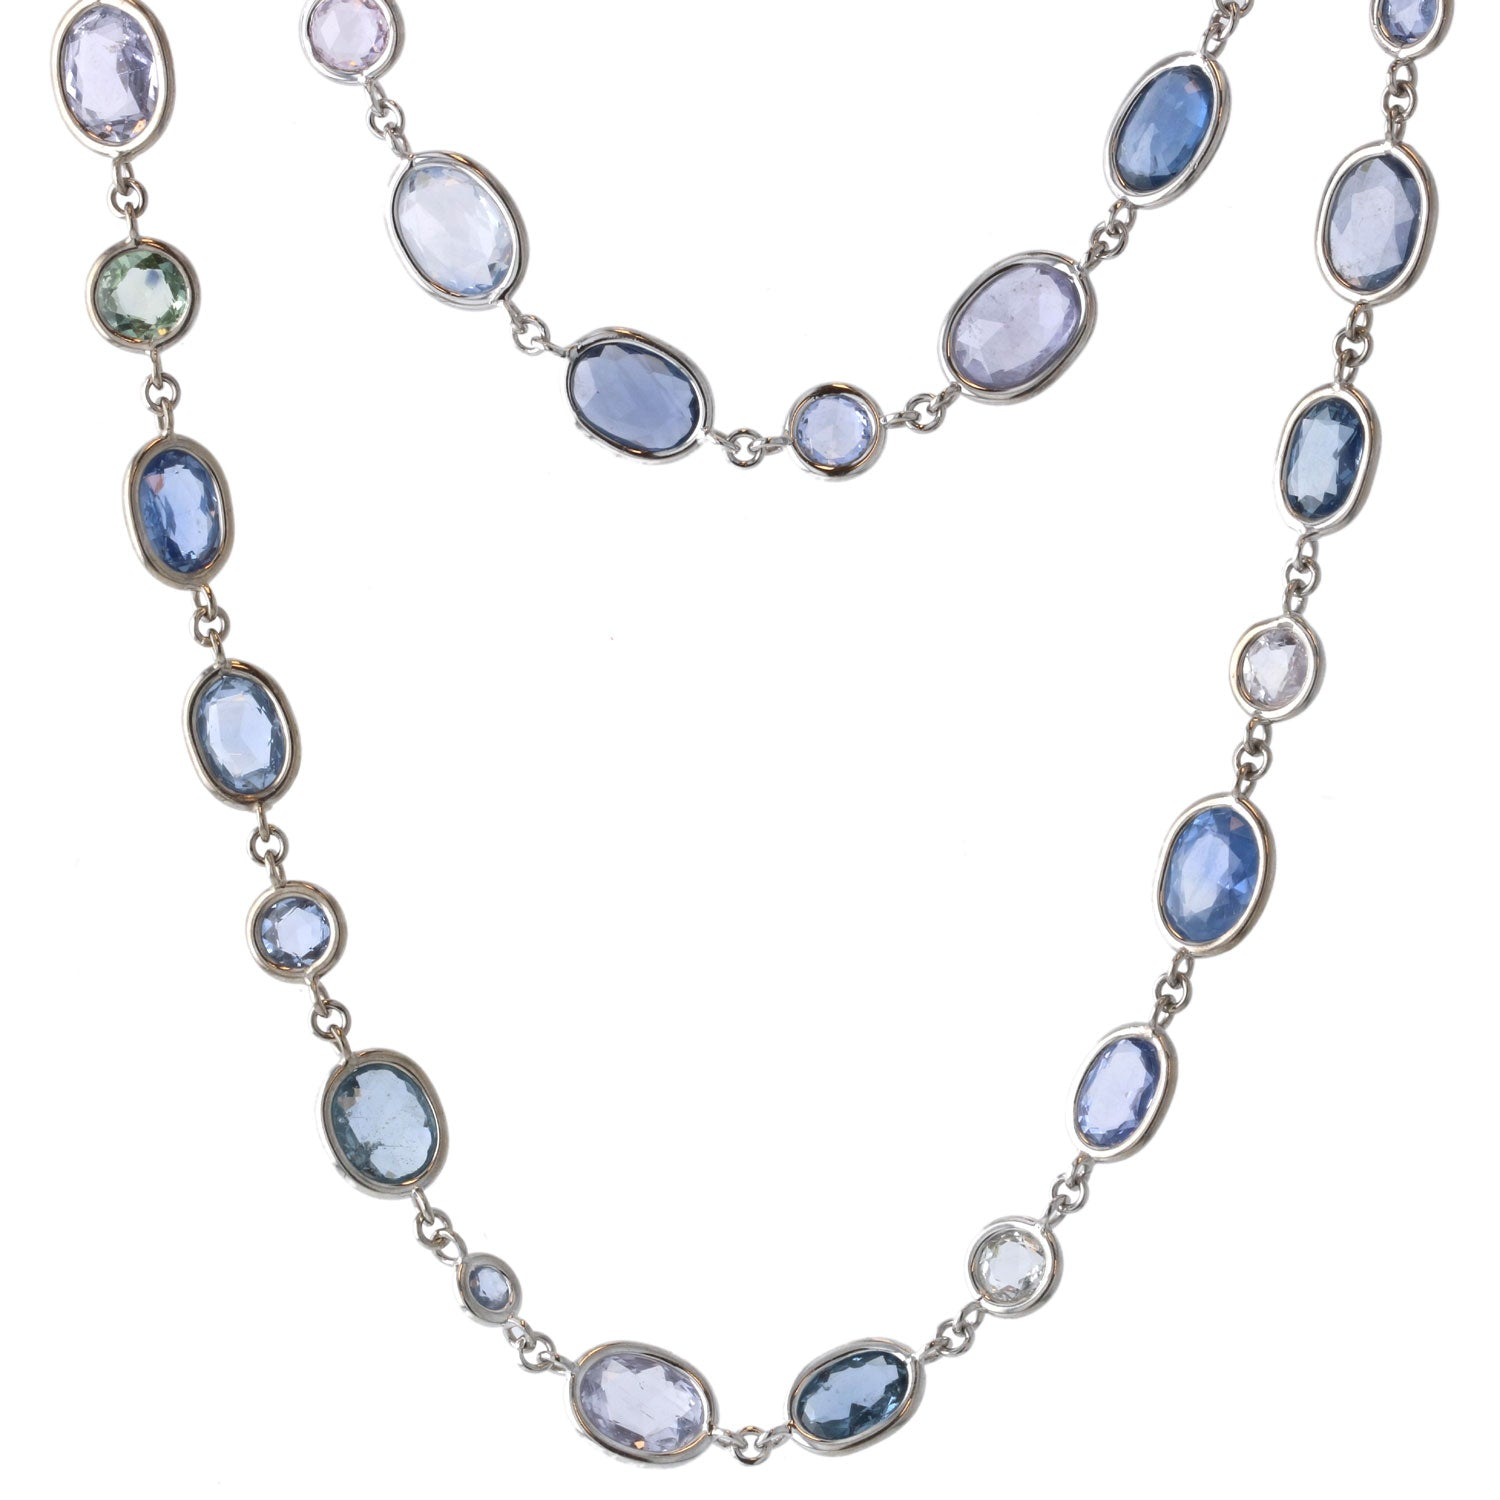 Beachfire Necklace with Blue Sapphires - 18K White Gold